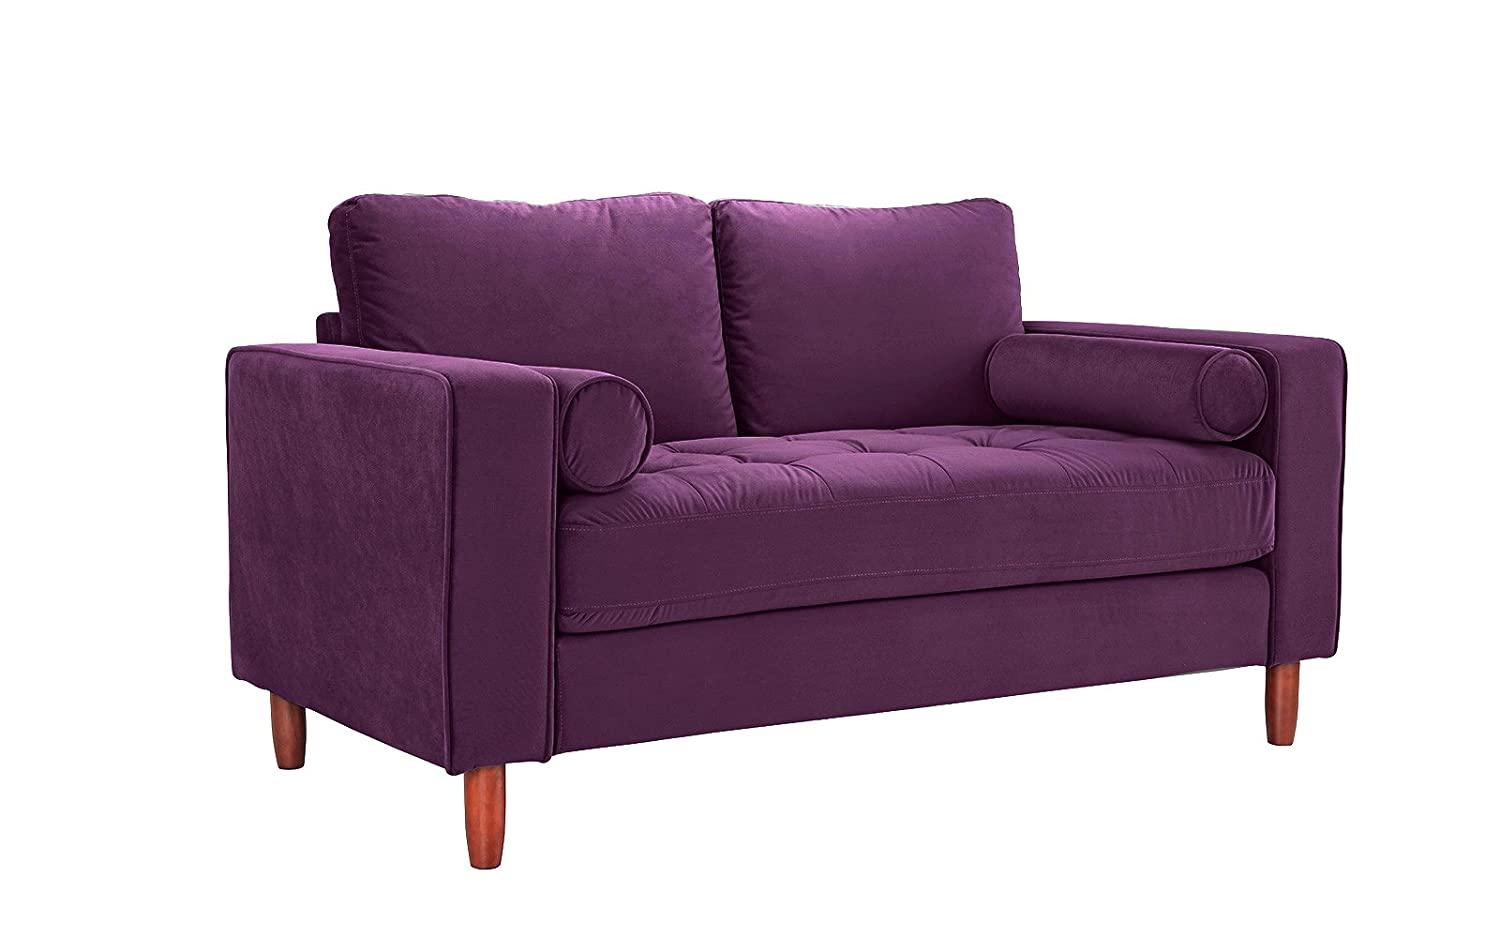 Divano Roma Furniture Couch for Living Room, Tufted Velvet Fabric Sofa with Back Cushions, Tufted Bottom and 2 Extra Cushions (Purple)